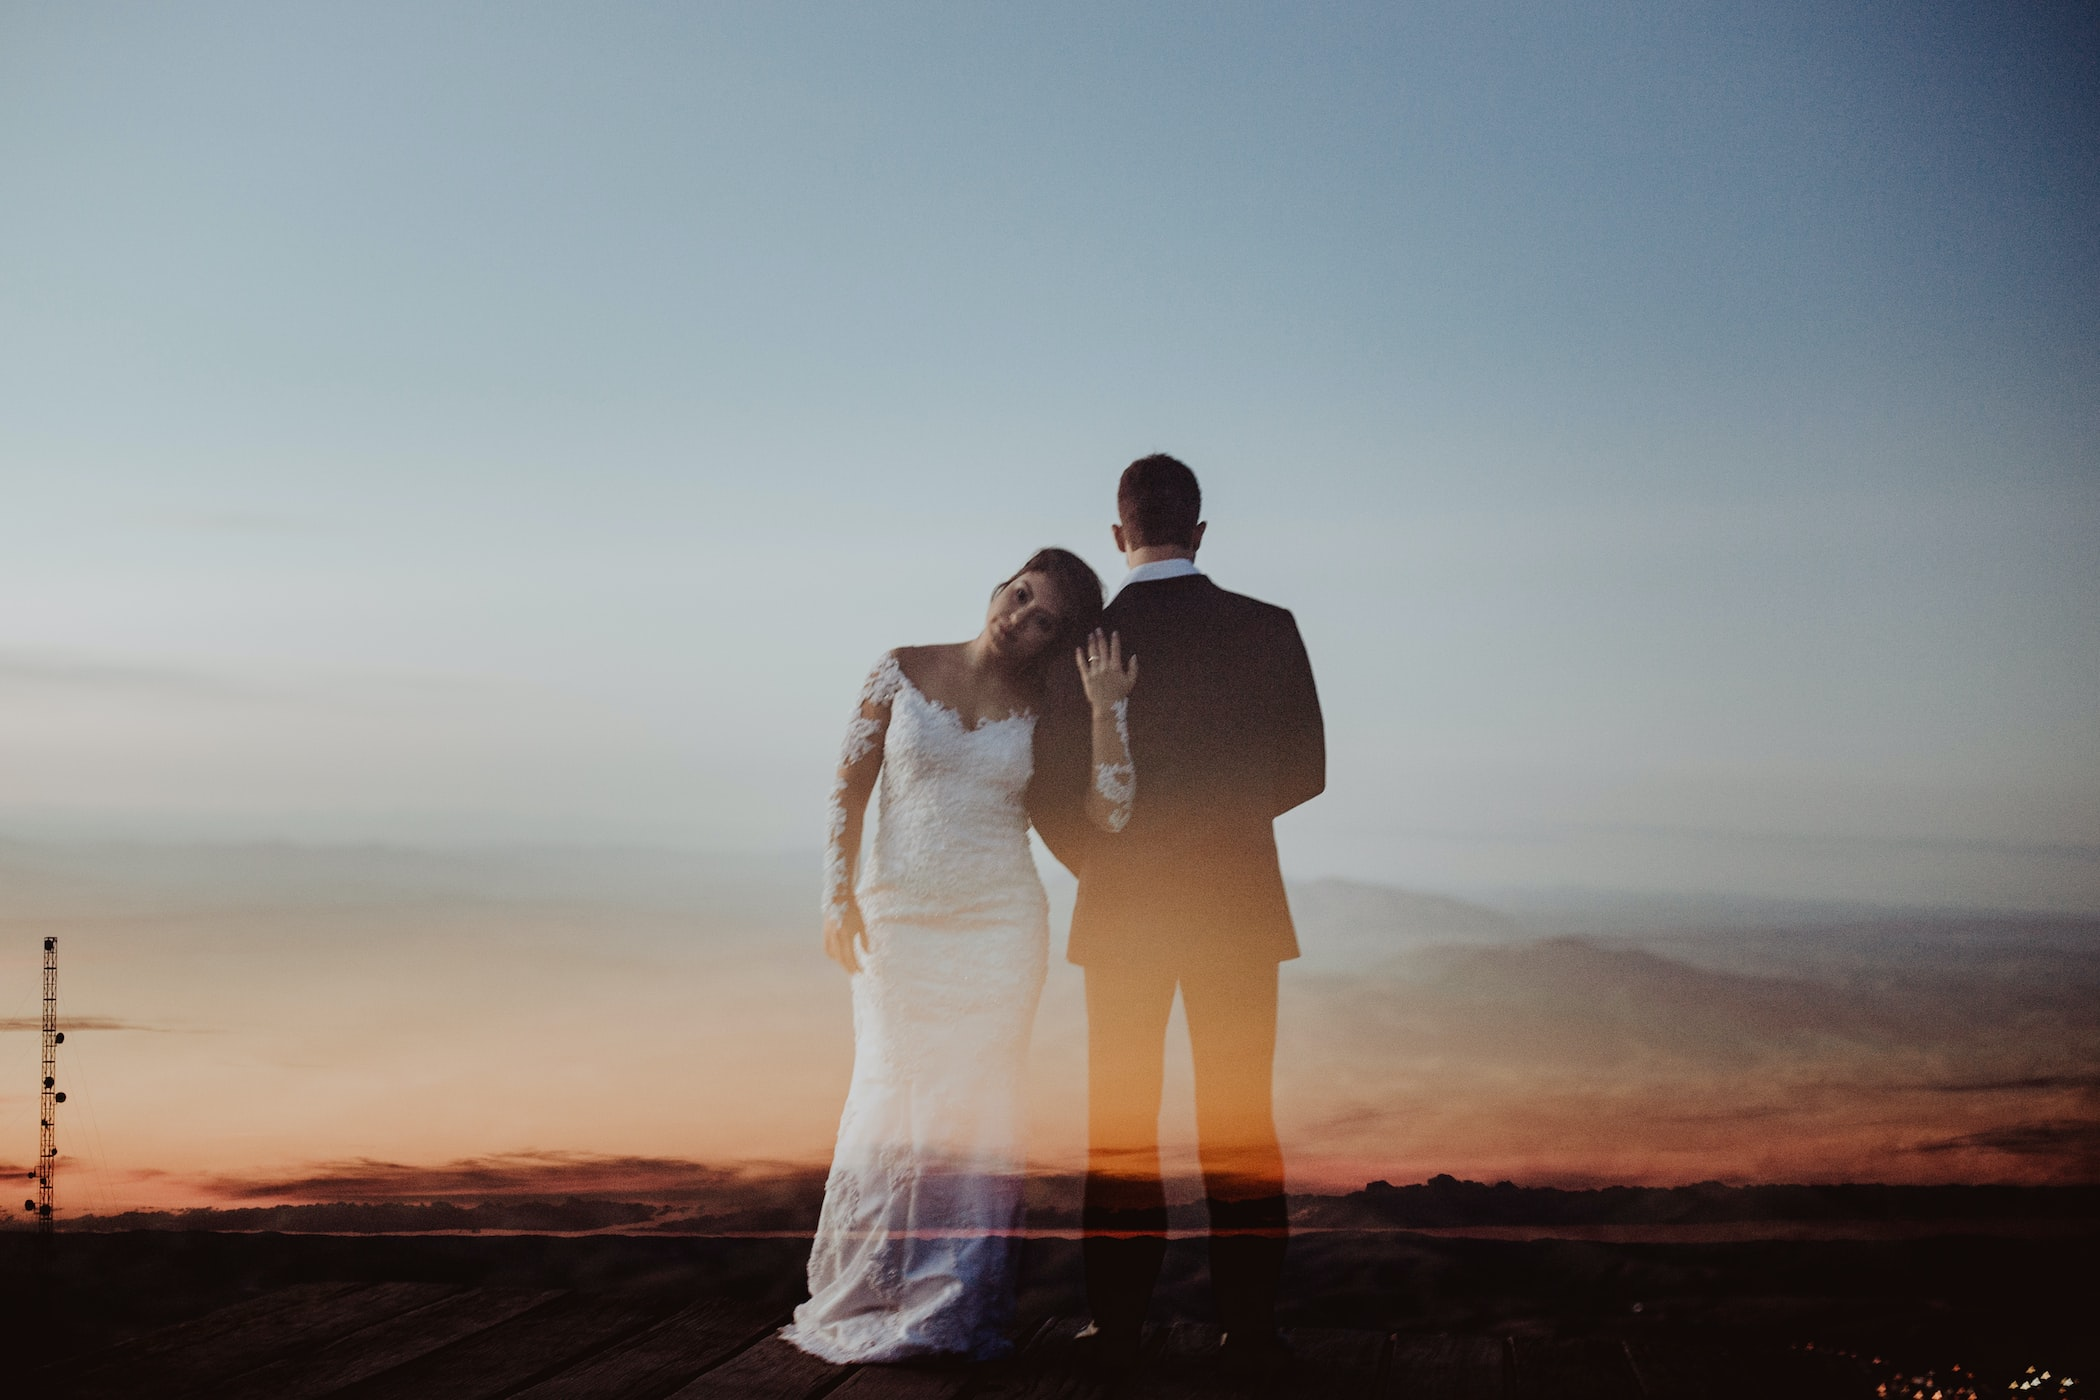 woman in wedding dress leaning her head to man's shoulder superimposed on a sunset